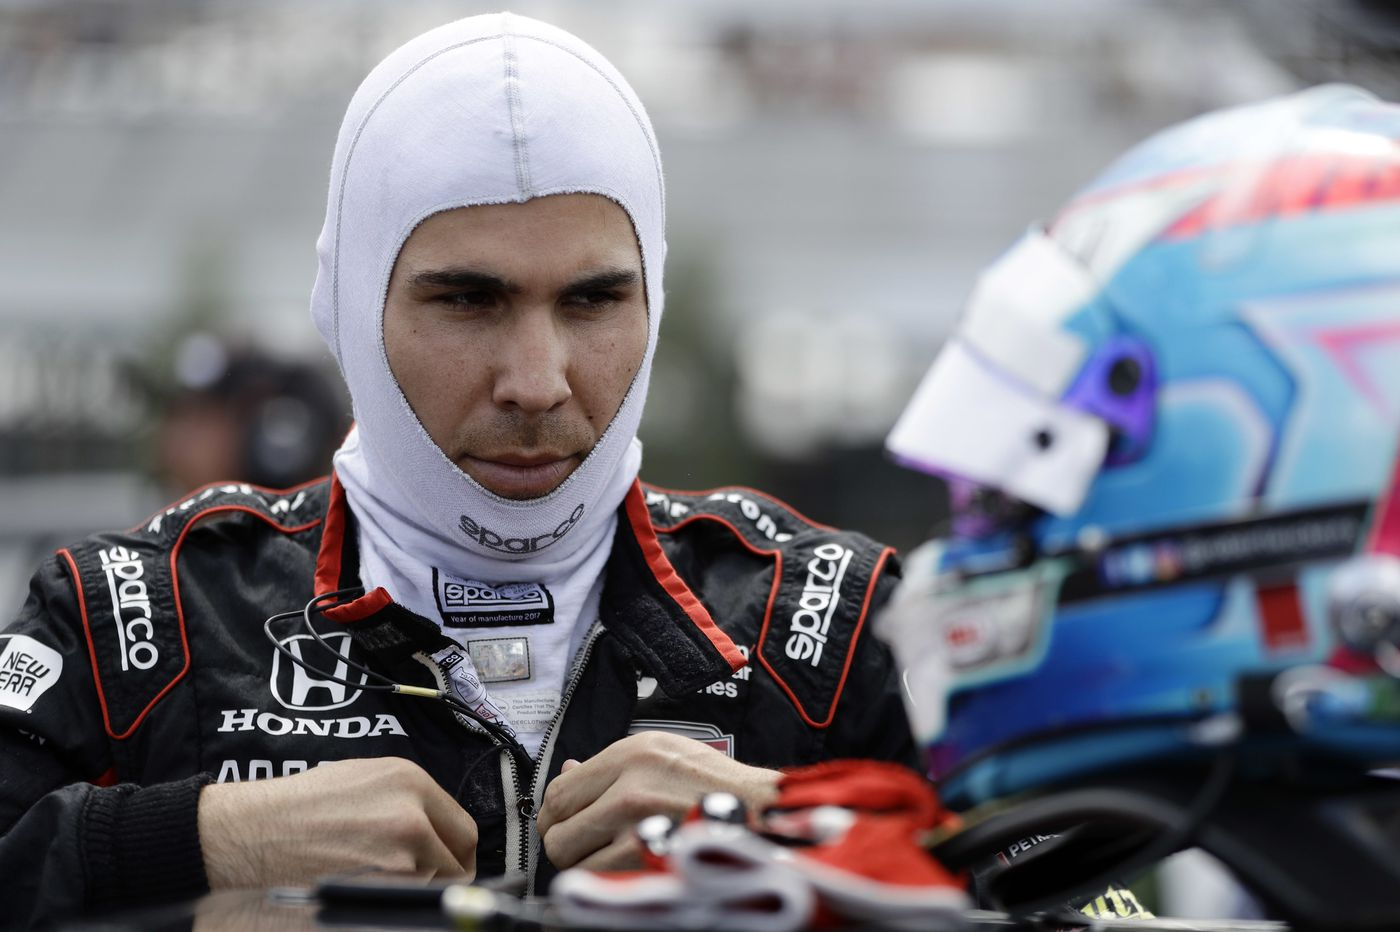 IndyCar driver Robert Wickens has rods, screws placed into spine